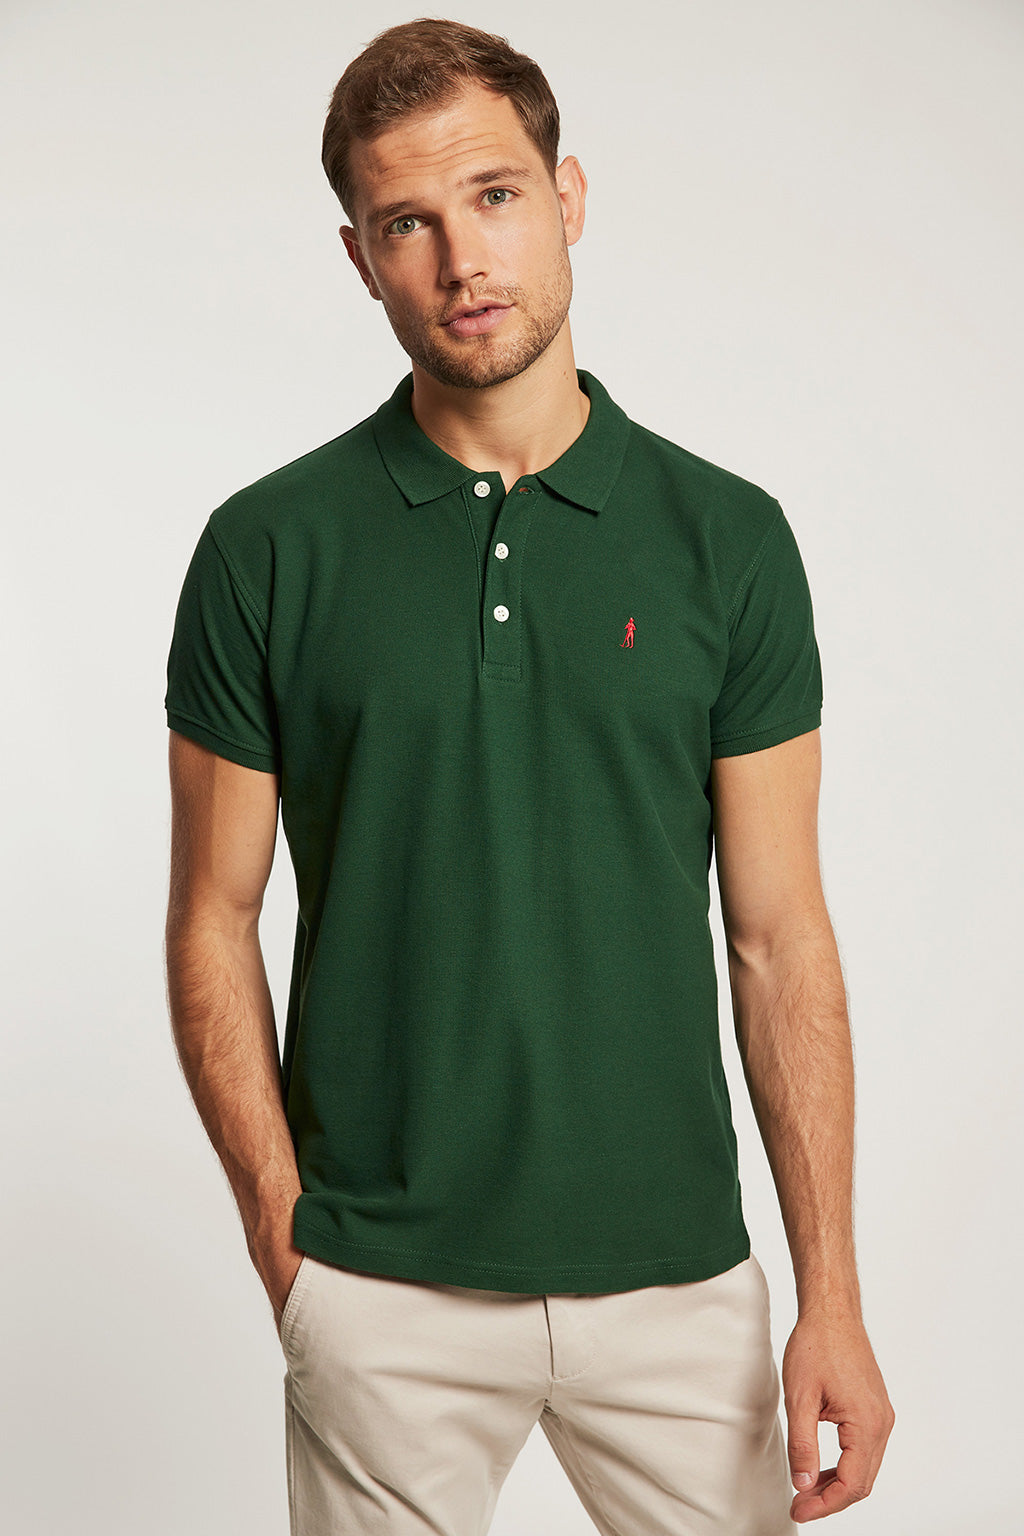 Bottle green polo shirt with embroidery